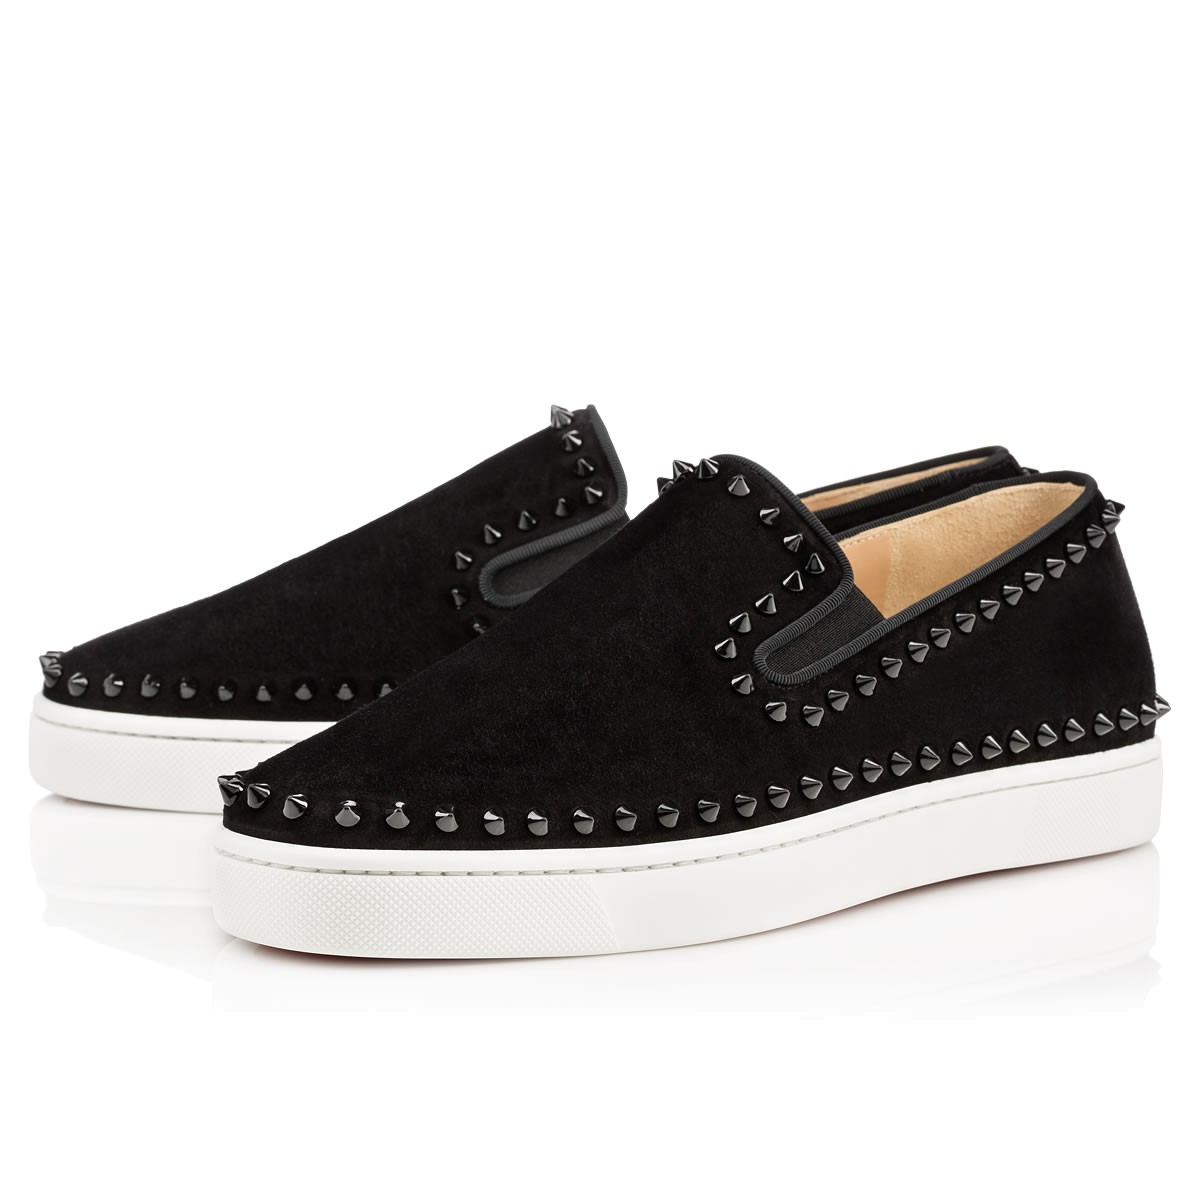 Pik Boat Men's Flat Black Suede - Men Shoes - Christian Louboutin